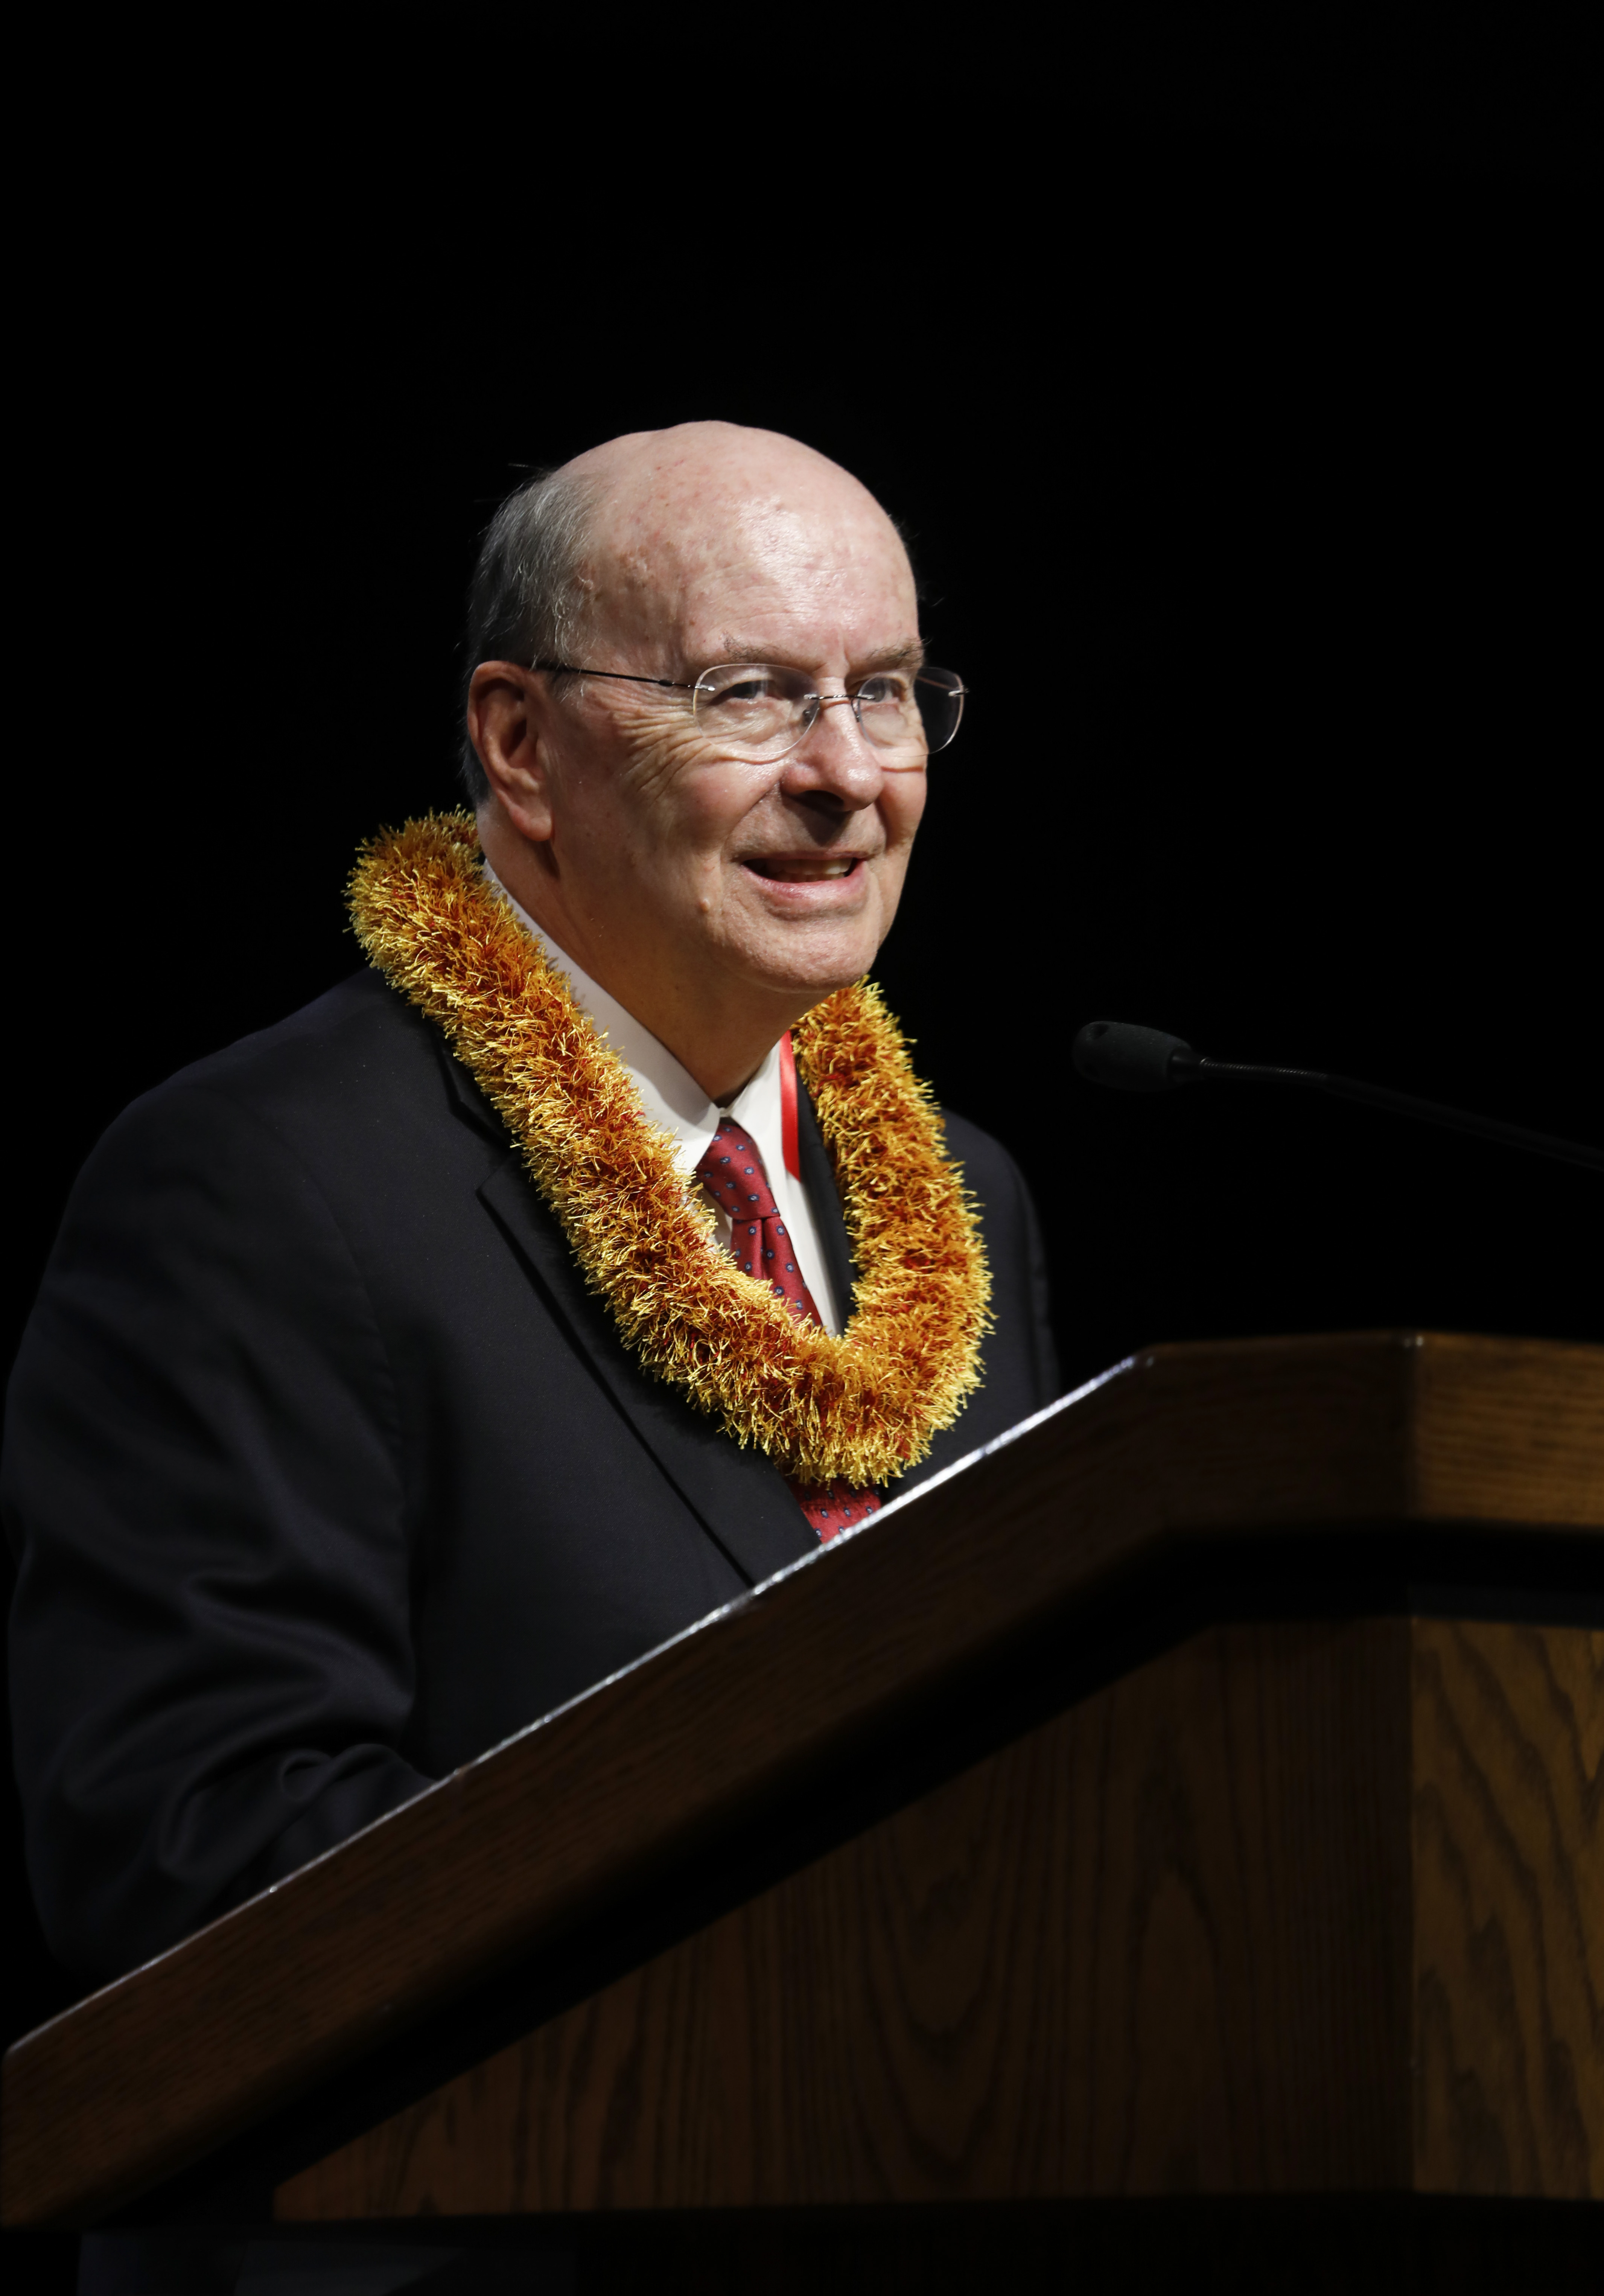 Elder Quentin L. Cook, of the Quorum of the Twelve Apostles, speaks during a campus devotional at BYU-Hawaii on Nov. 20.